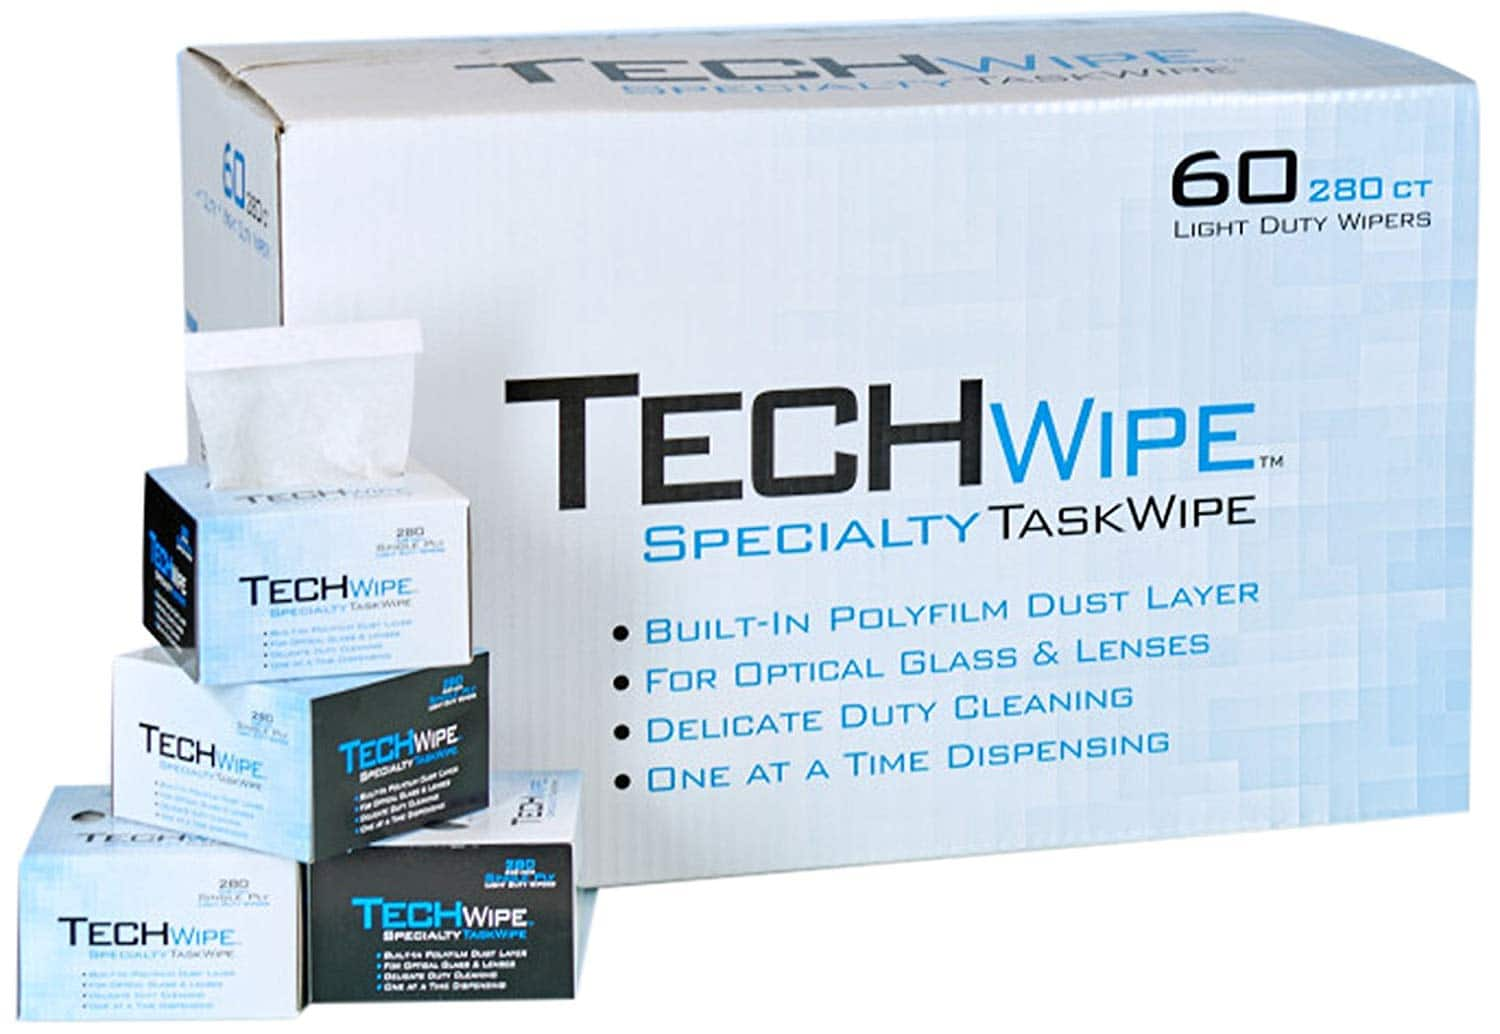 Berk Wiper Techwipes - Pack of 60,000 - $37.01 at Amazon with subscribe and save + free shipping with prime